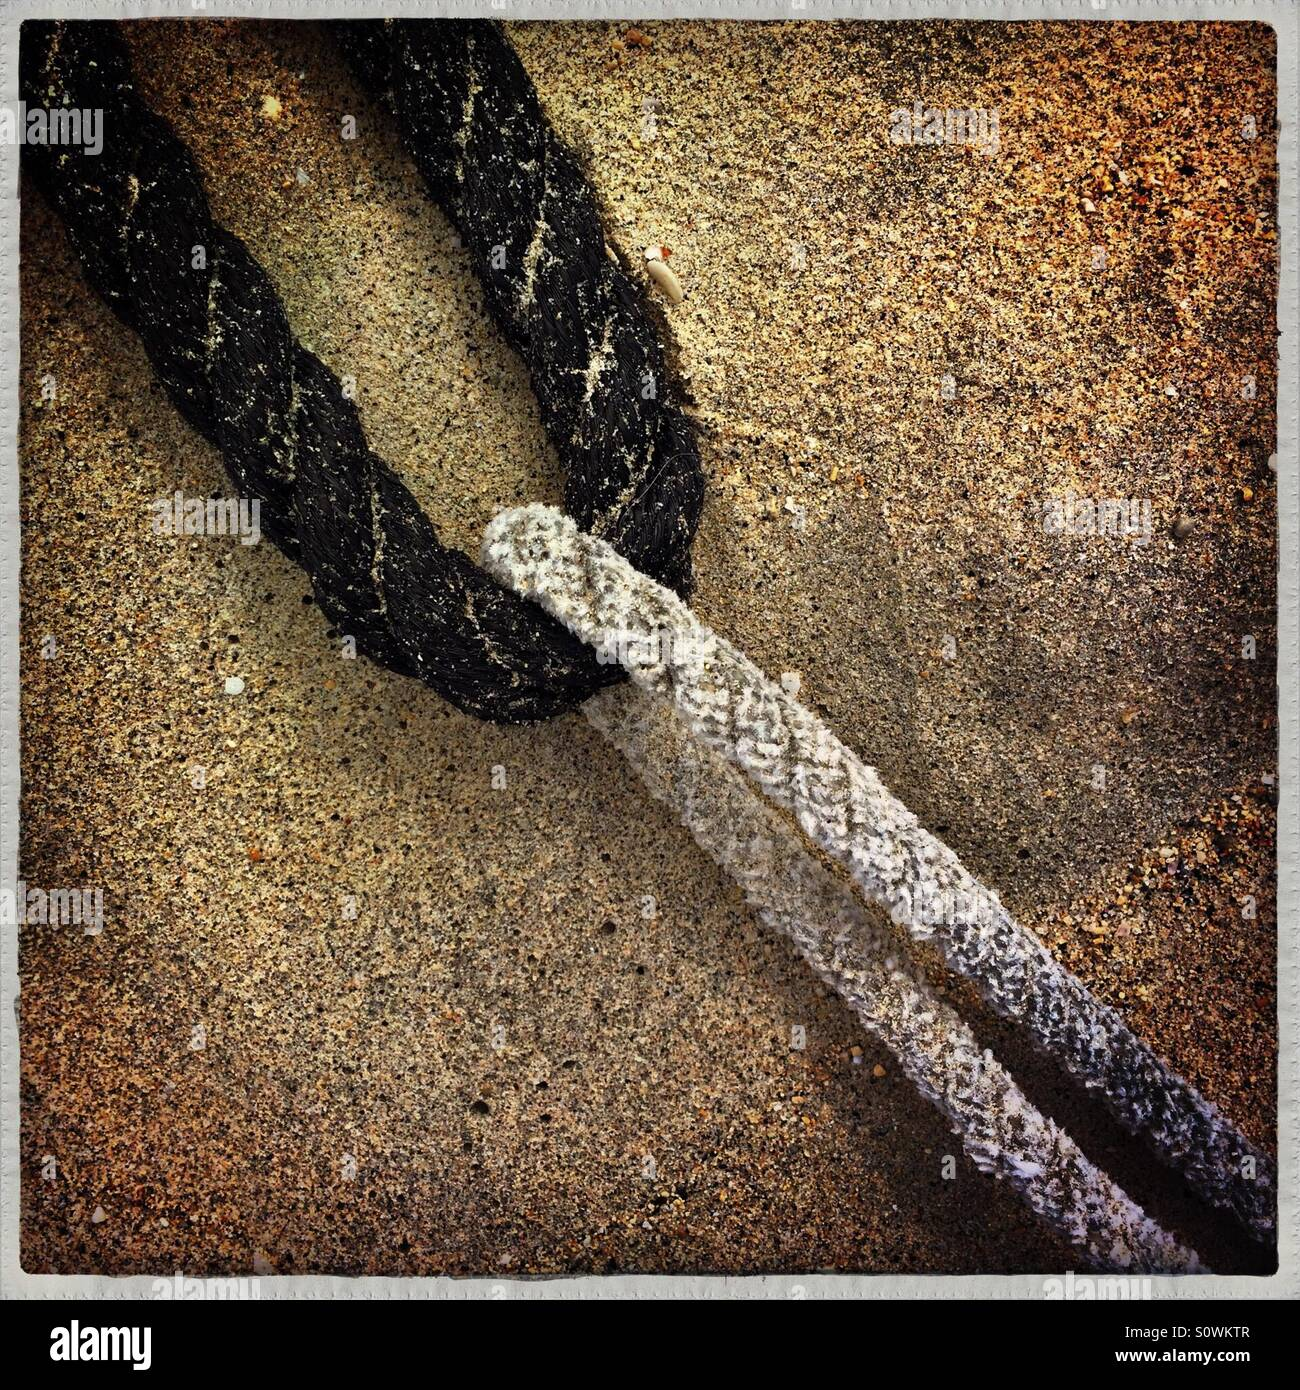 Black and white ropes intertwined on sand - Stock Image